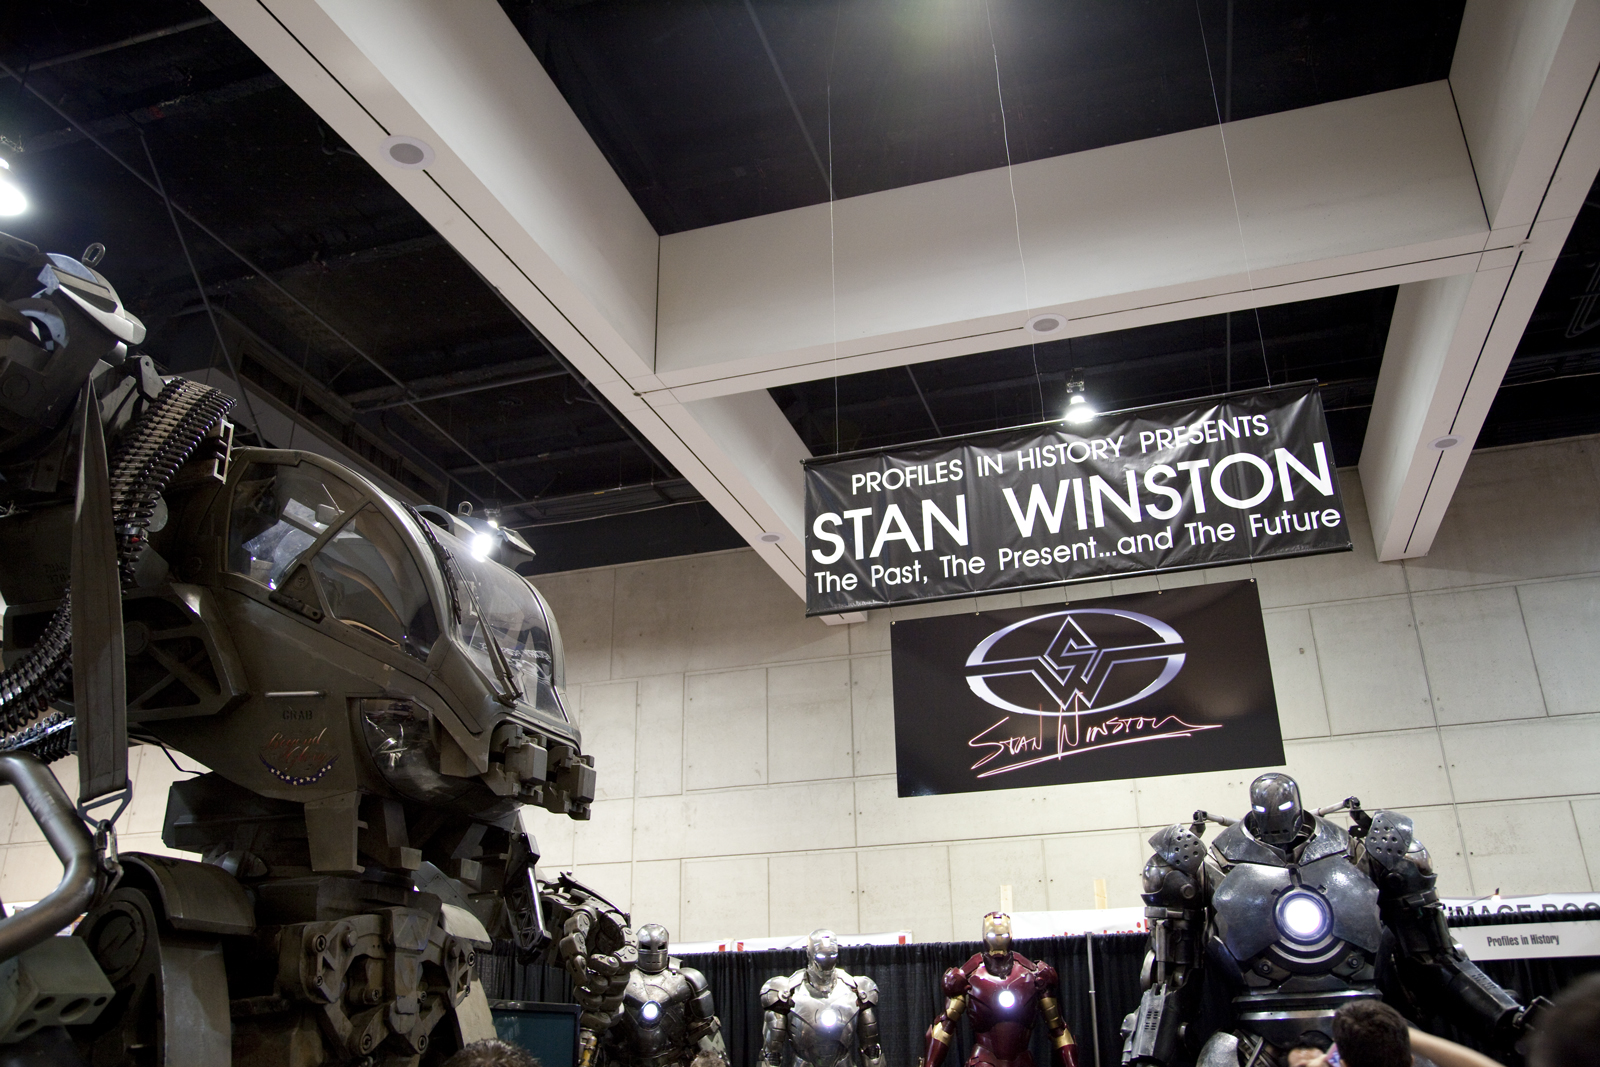 Profiles in History Exhibit Features Tribute to Stan ...